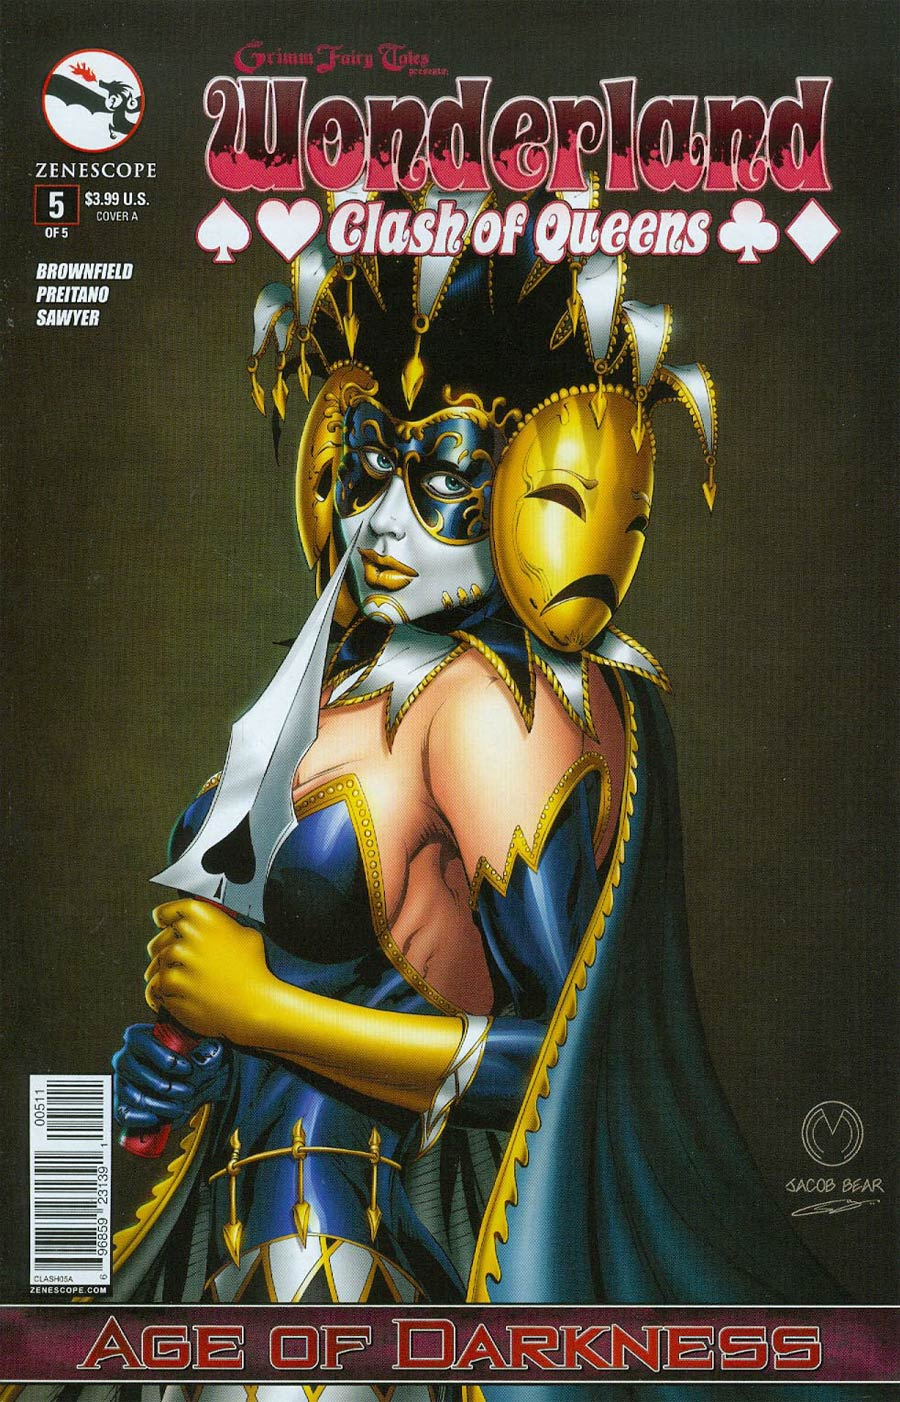 Grimm Fairy Tales Presents Wonderland Clash Of Queens #5 Cover A Marat Mychaels (Aof